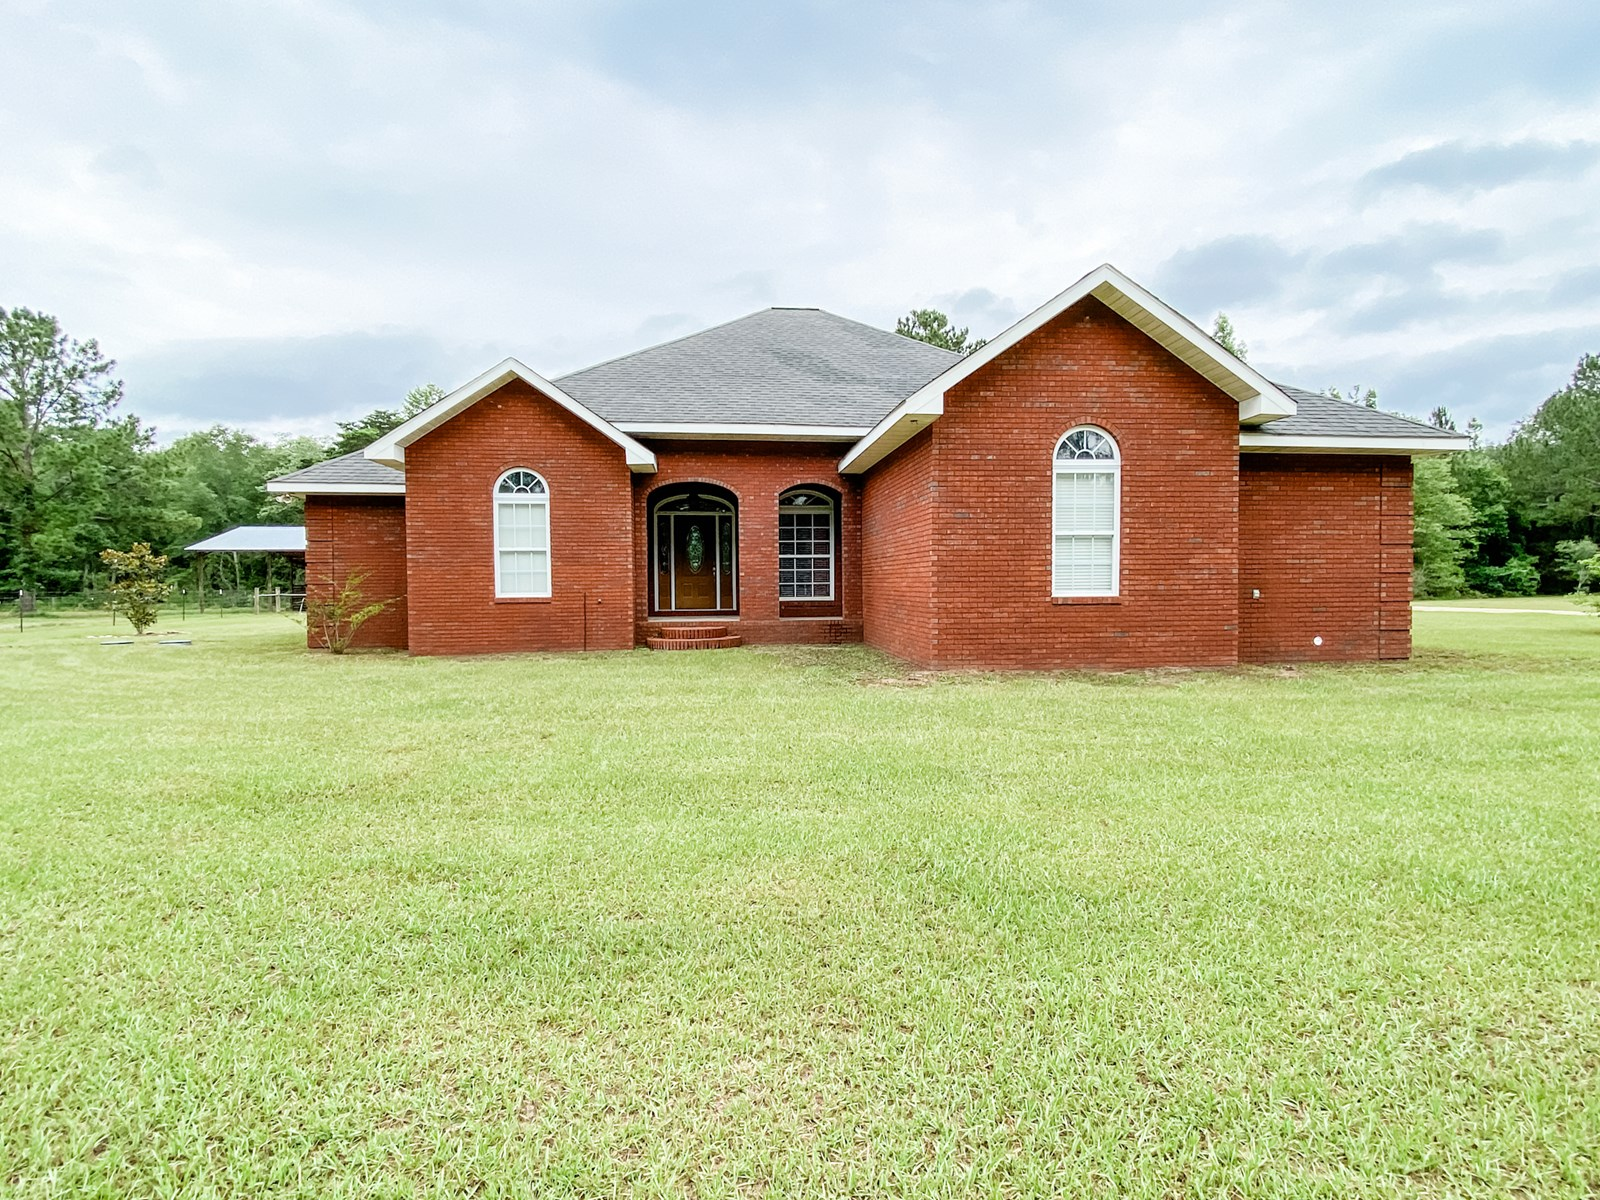 Country Home for Sale with Land & Pole Barn in South Alabama